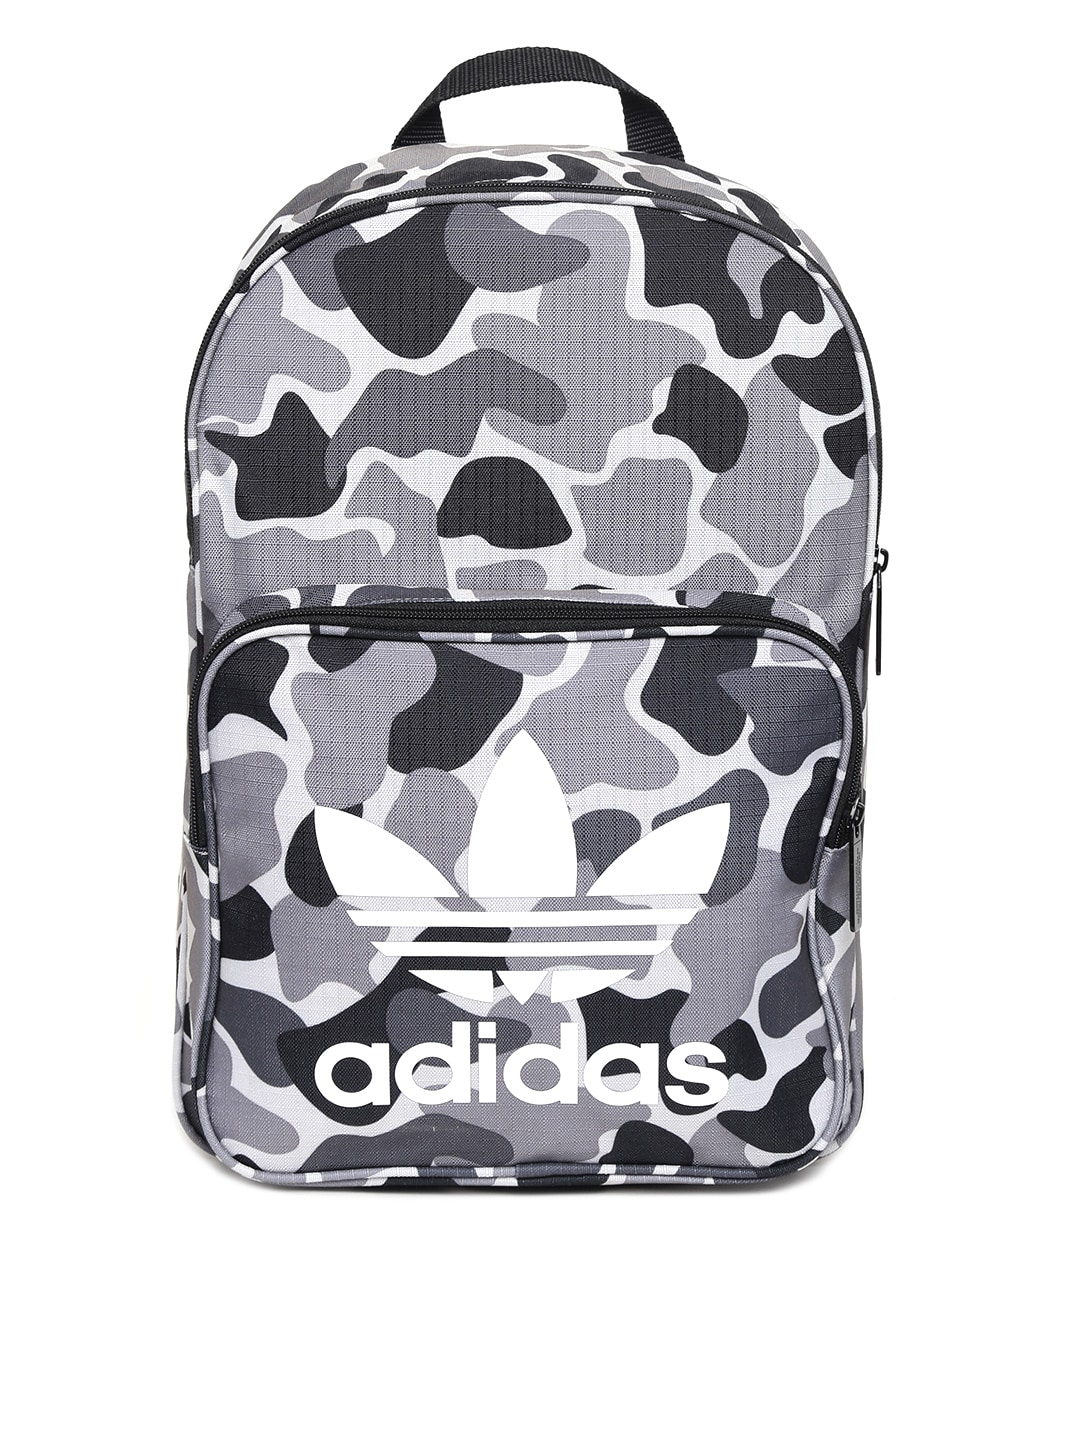 6175764063 Adidas Football Backpacks - Buy Adidas Football Backpacks online in India